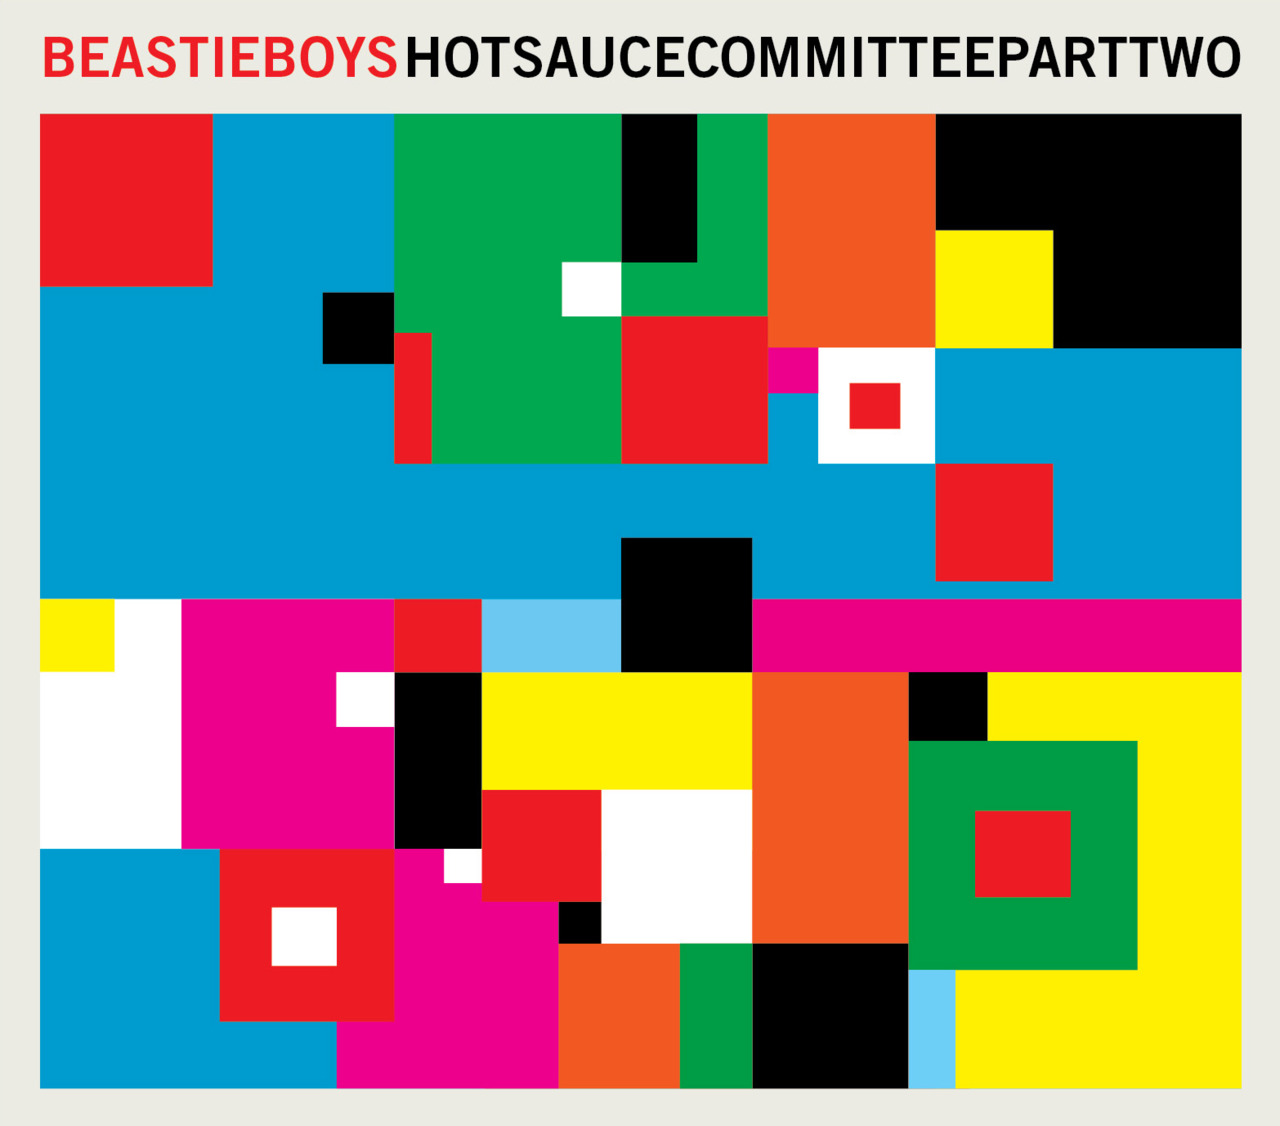 Beastie Boys: Hot Sauce Committee, Part Two